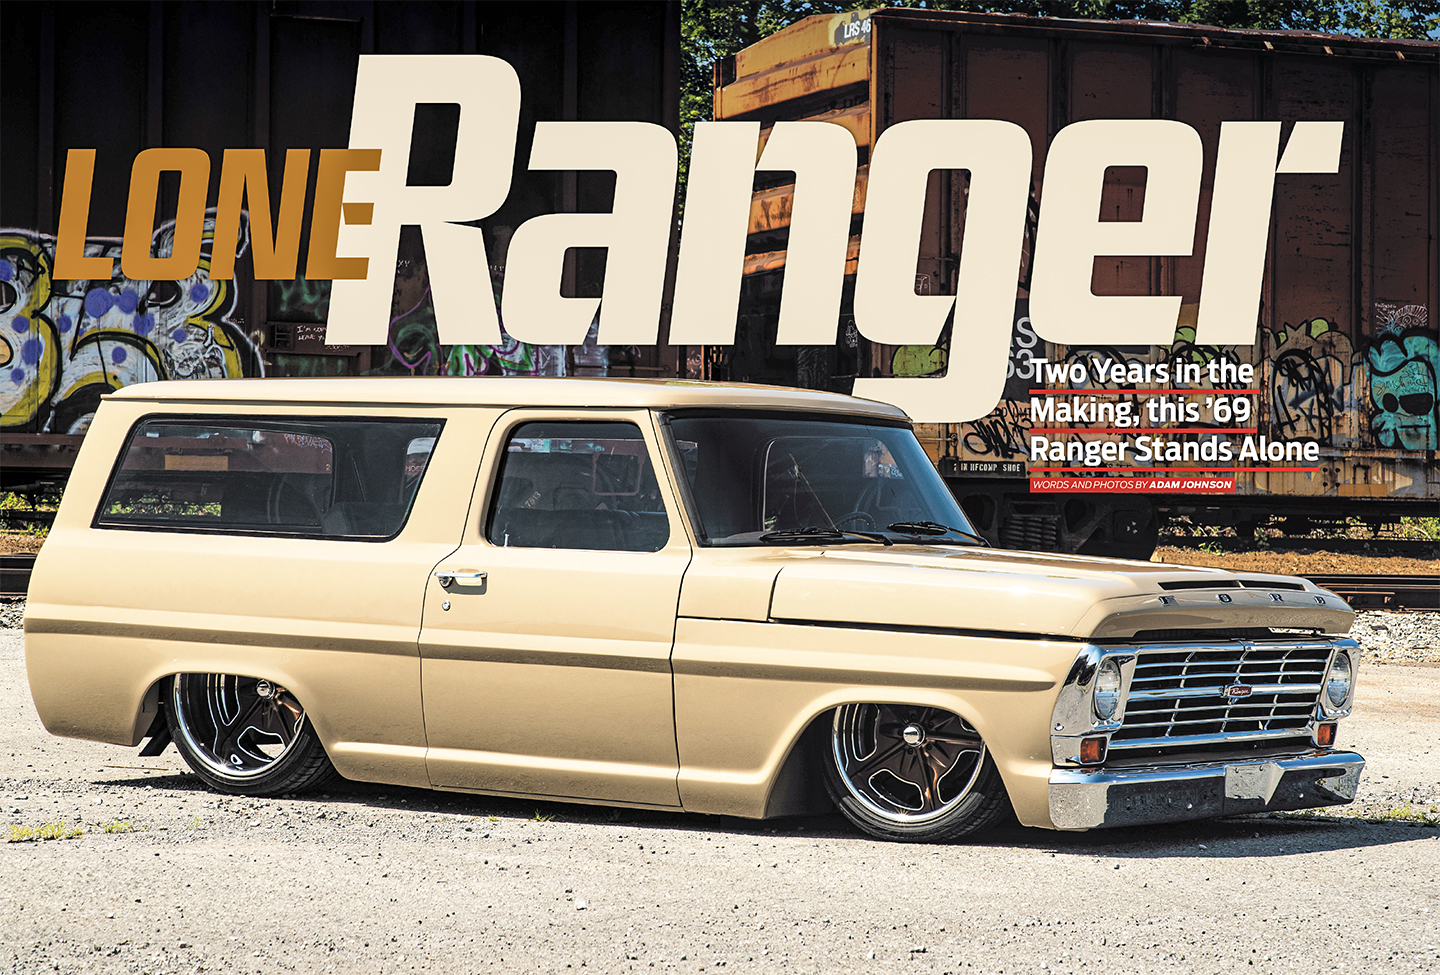 Lone Ranger Combining A 69 Ford Ranger With A 72 Ford Van For The Win Street Trucks